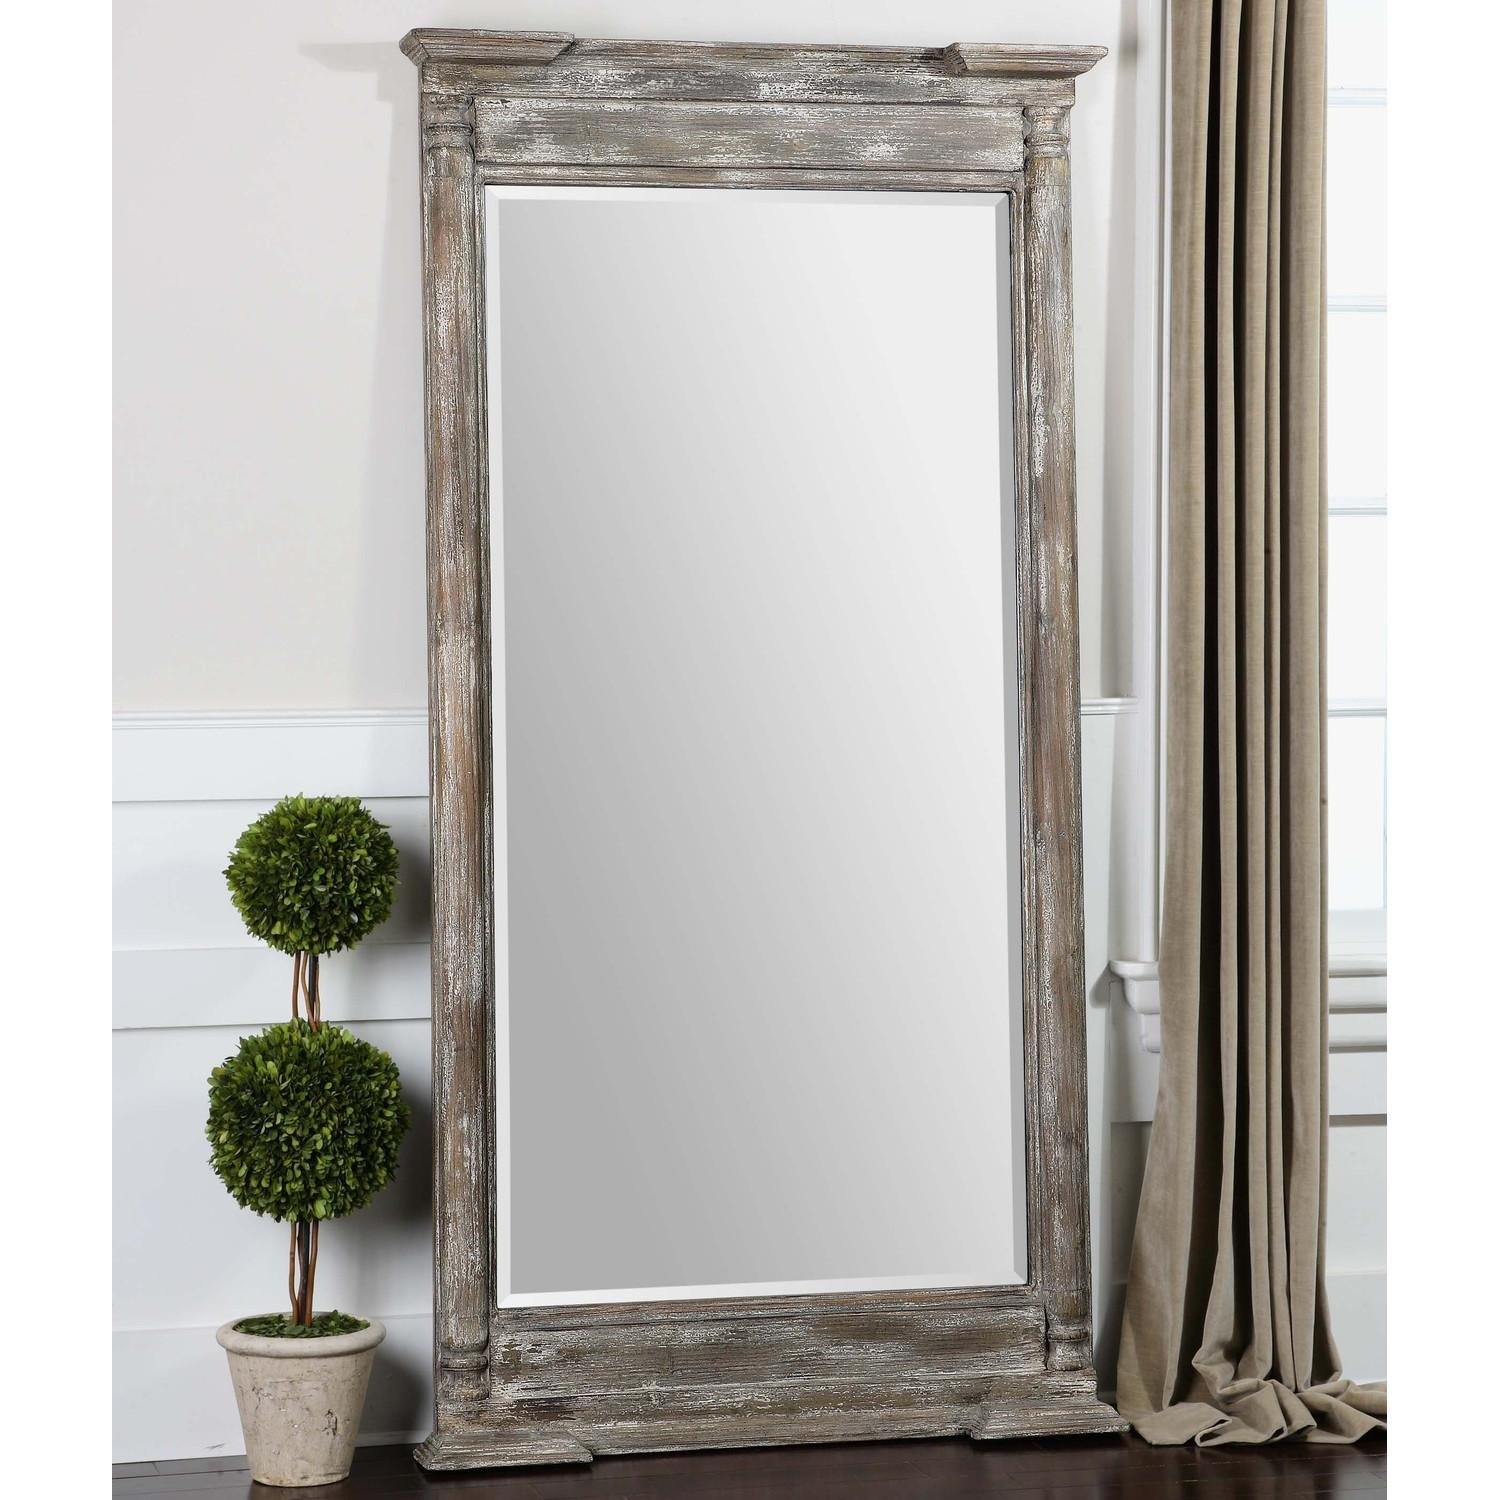 Shabby Chic Floor Mirror 4 Outstanding For Baroque Antique French Intended For French Floor Mirror (Image 19 of 20)